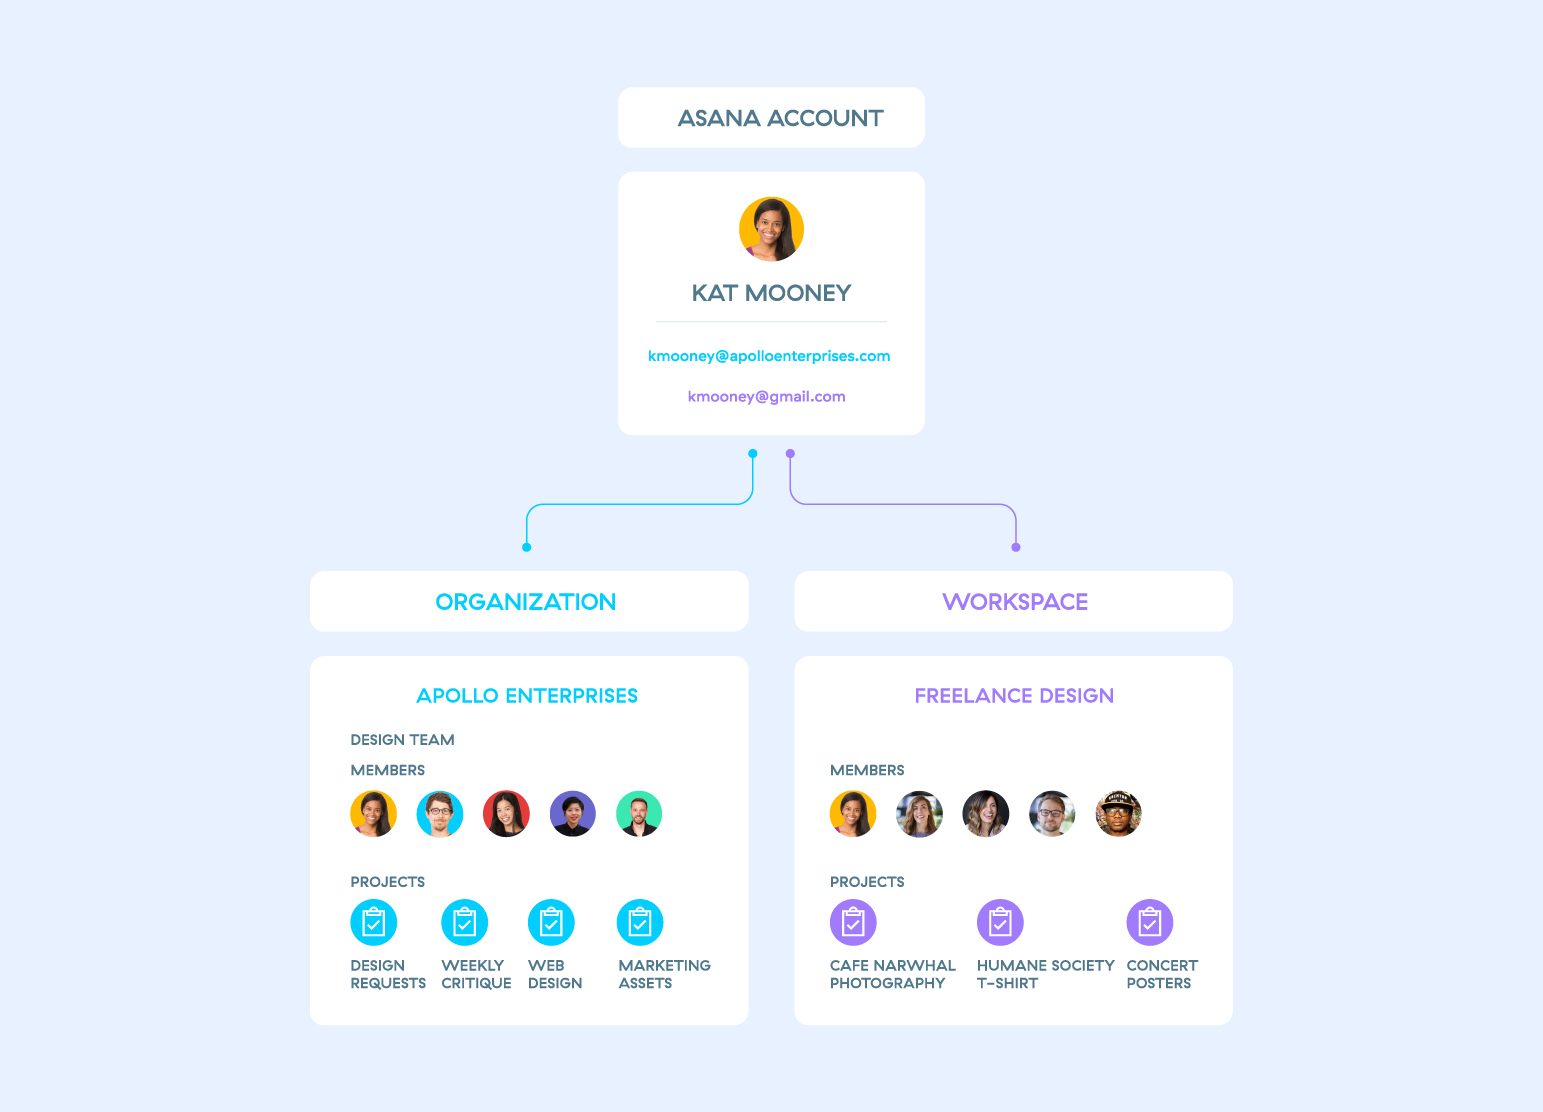 asana account diagram